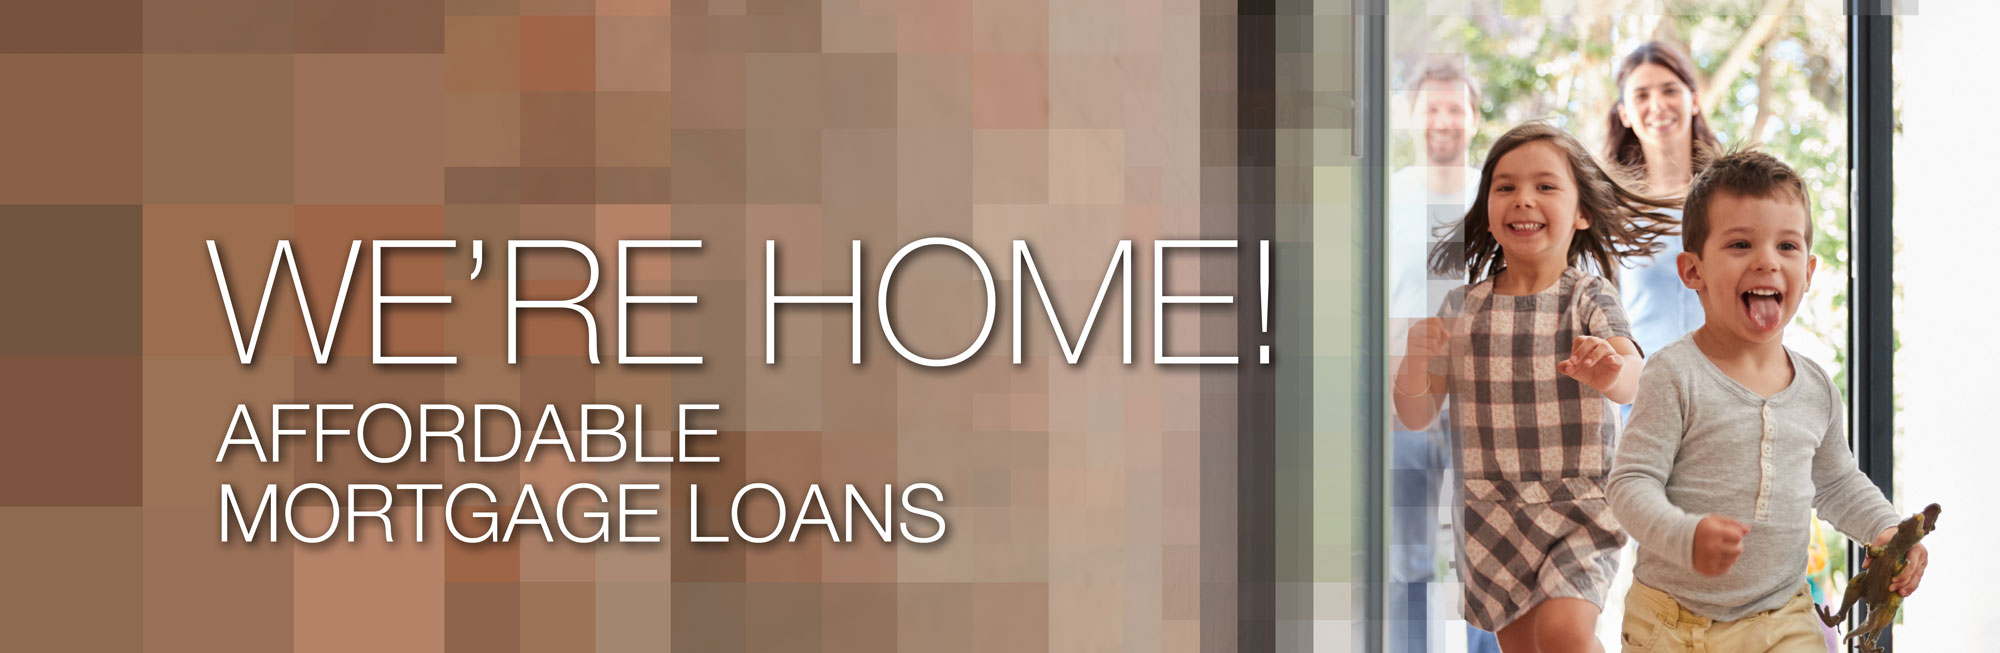 We're Home! Affordable Mortgage Loans